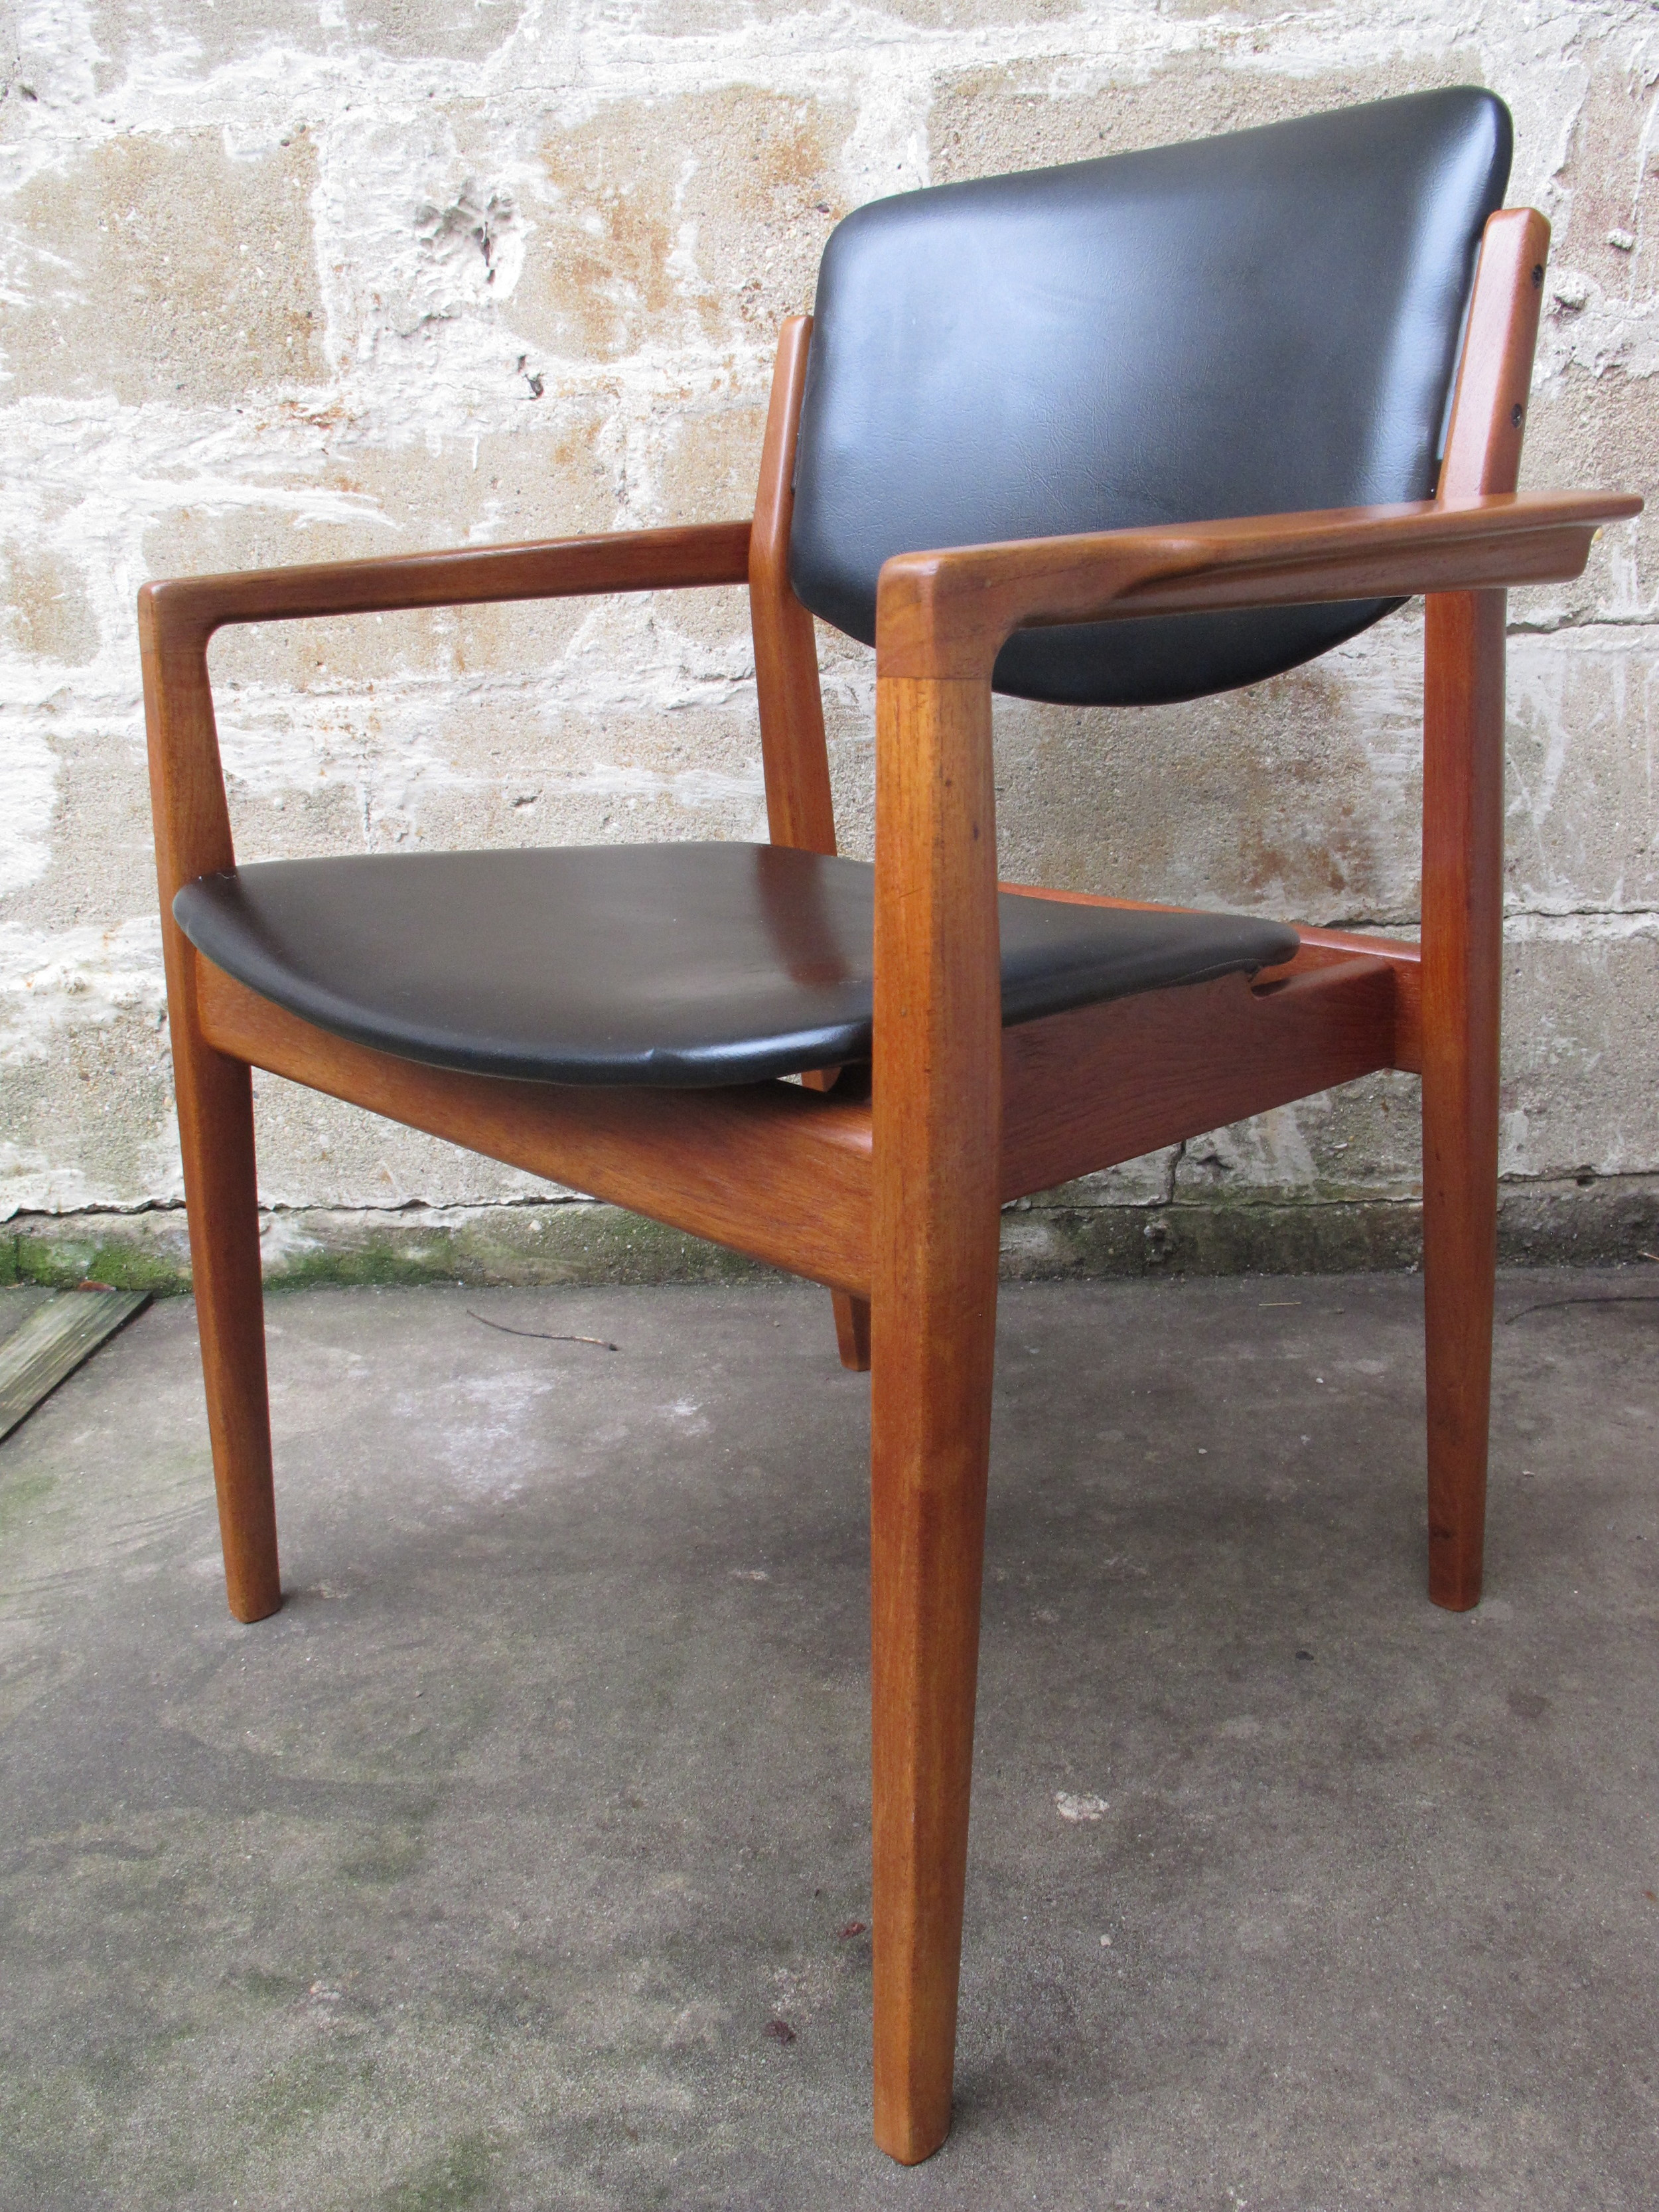 DANISH MODEL 196 ARMCHAIR BY FINN JUHL MANUFACTURED BY FRANCE AND SON & IMPORTED BY JOHN STUART